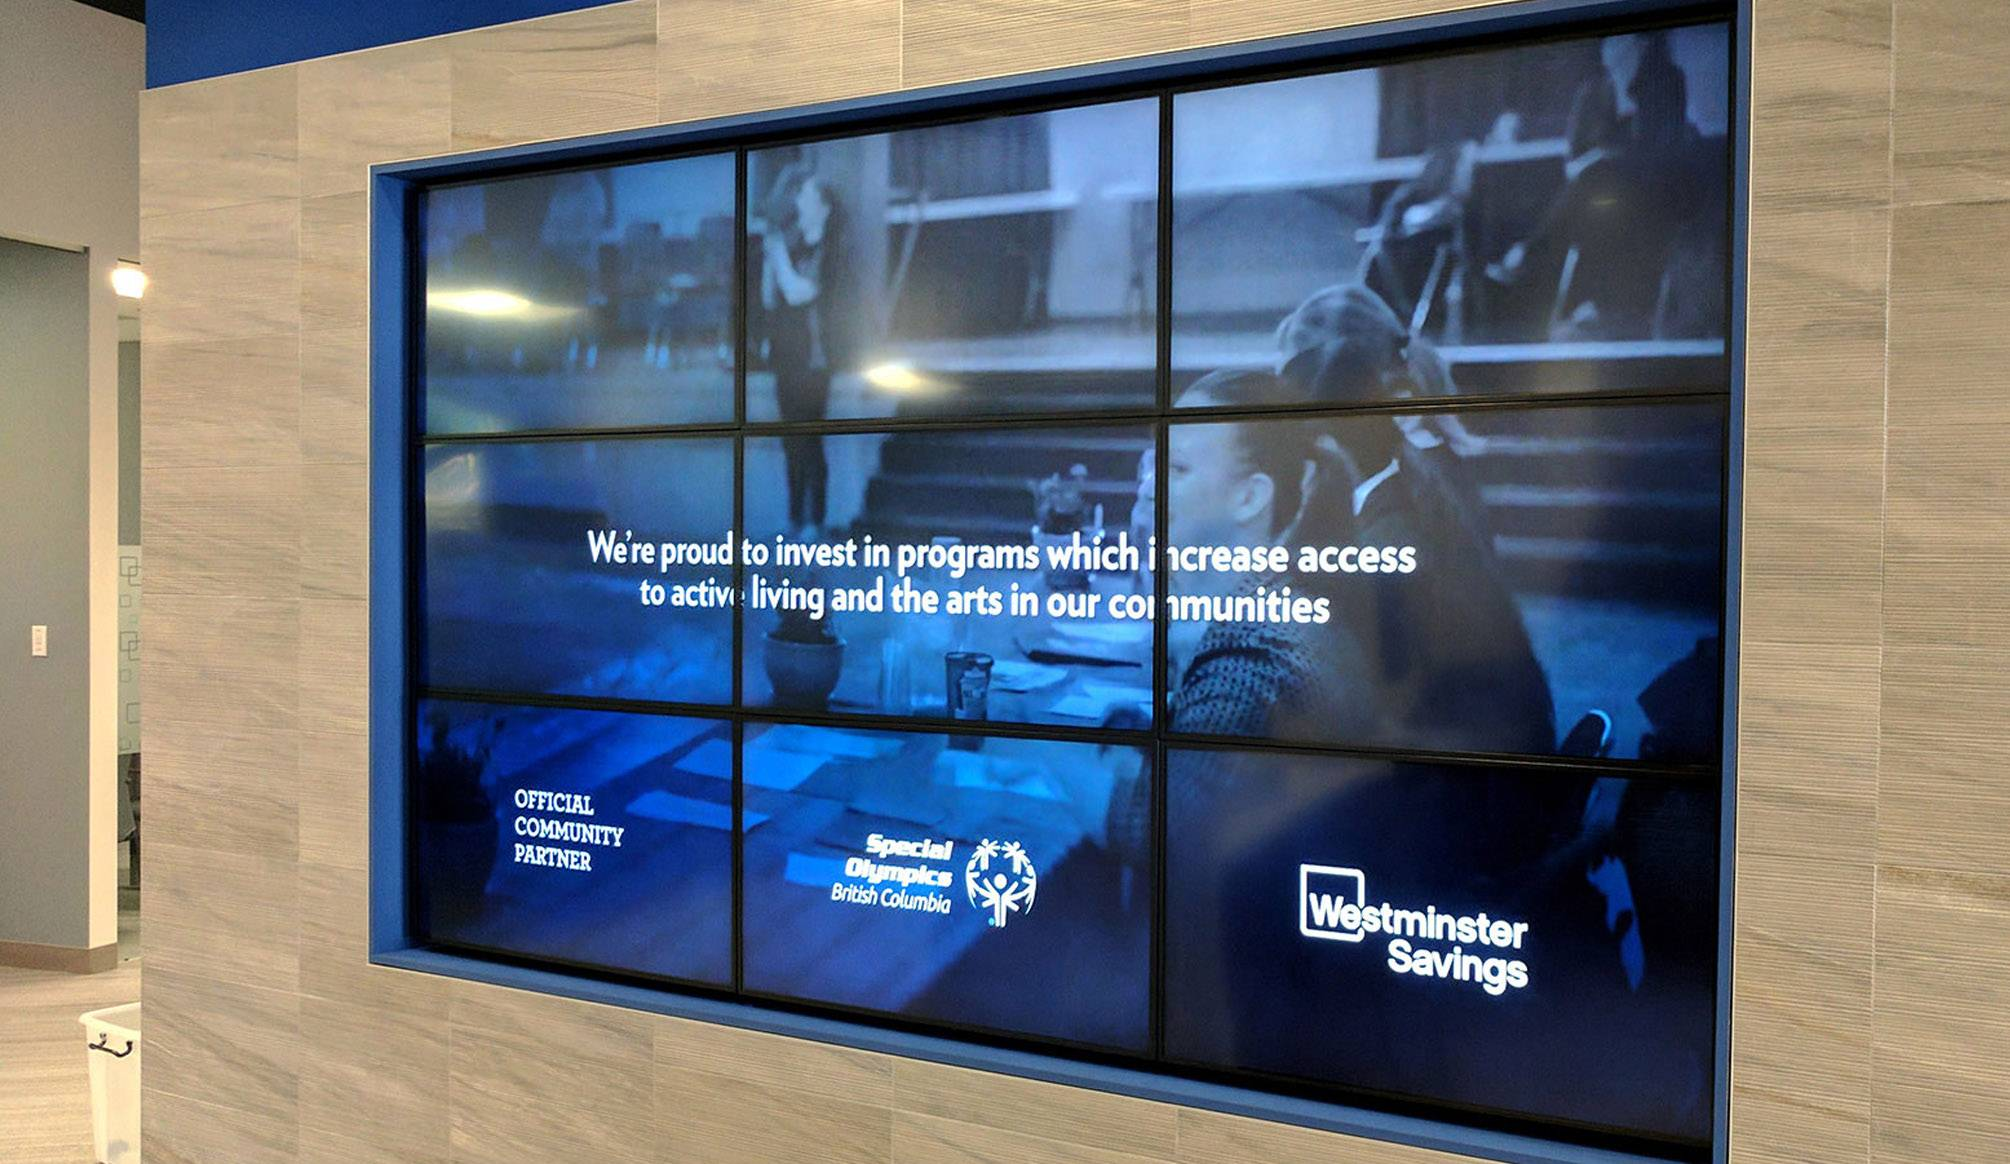 Graphic Design Services - NexSigns for Westminster Savings - Video Wall